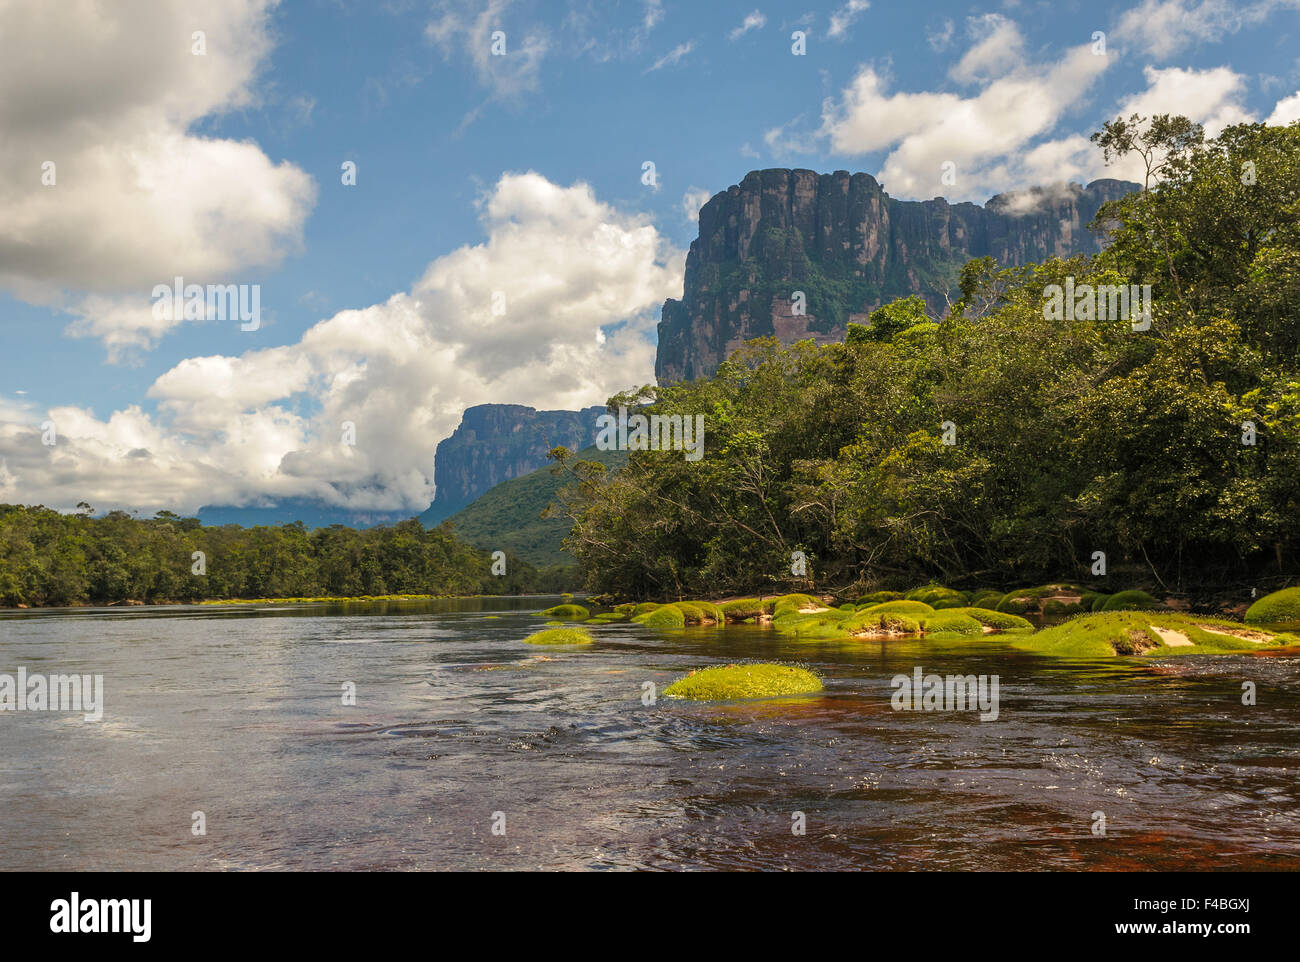 Canaima National Park, Venezuela - Stock Image